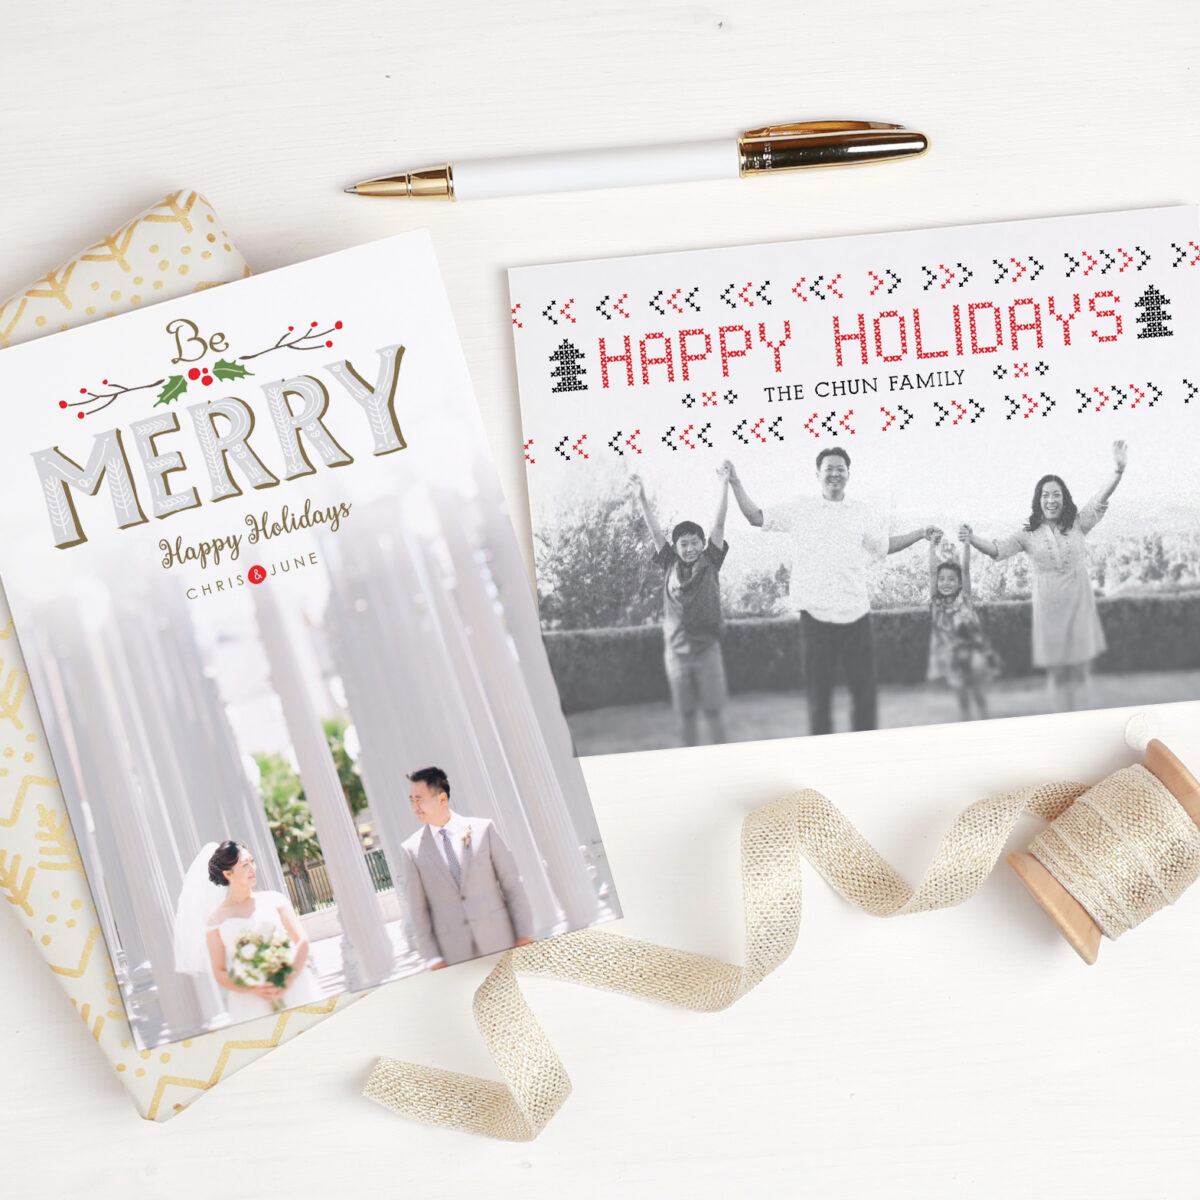 Customized greeting cards made with ease